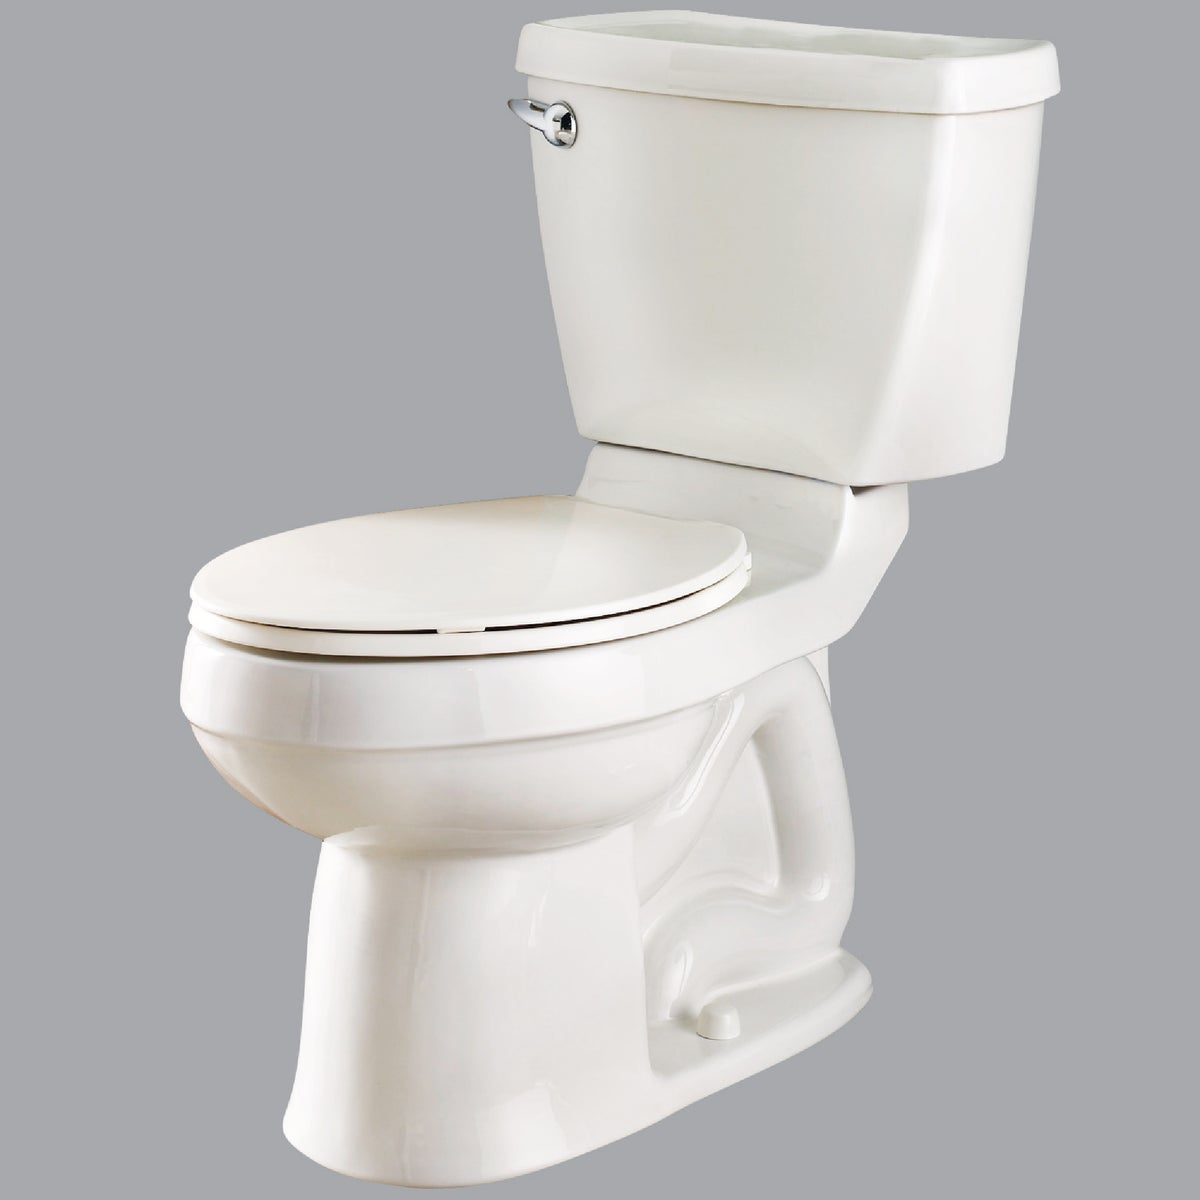 WHITE ADA TOILET-TO-GO - 2586.000ST.020 by American Standard